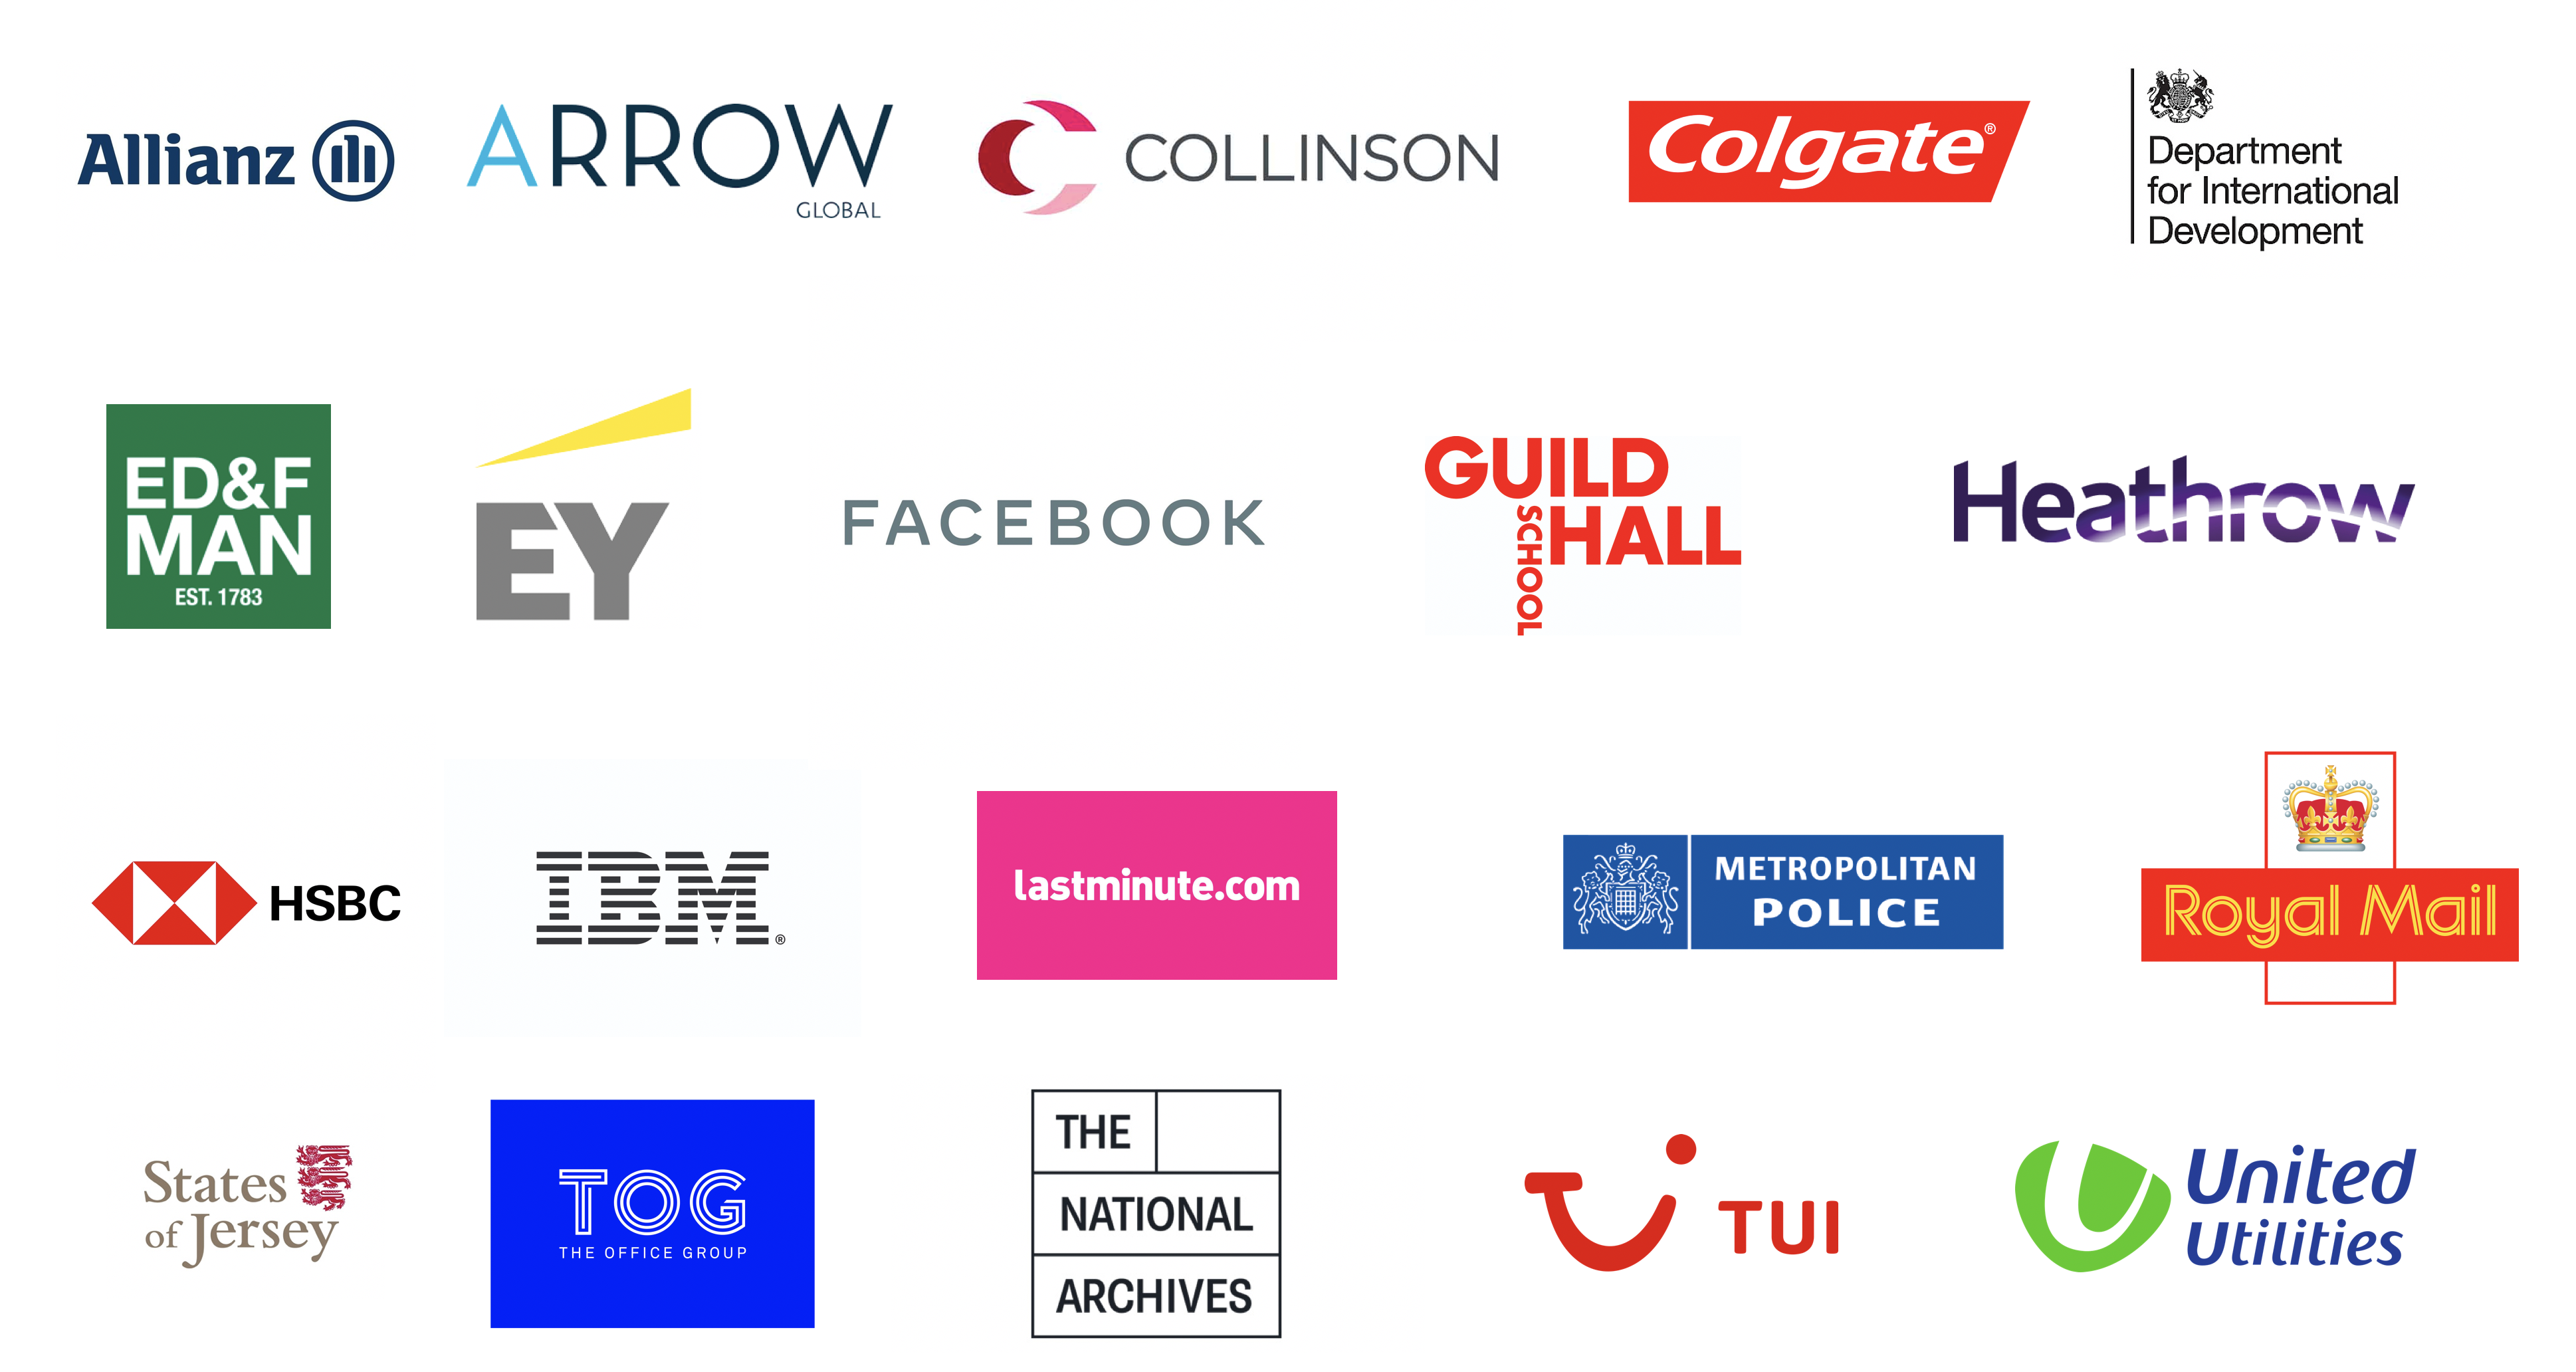 Generation Digital Clients - Arrow Global, Allianz, Collinson, Colgate, Department of International Development, ED&F Man, EY, Facebook, Heathrow, HSBC, IBM, Lastminute.com, Metropolitan Police, Royal Mail, Tui, United Utilities